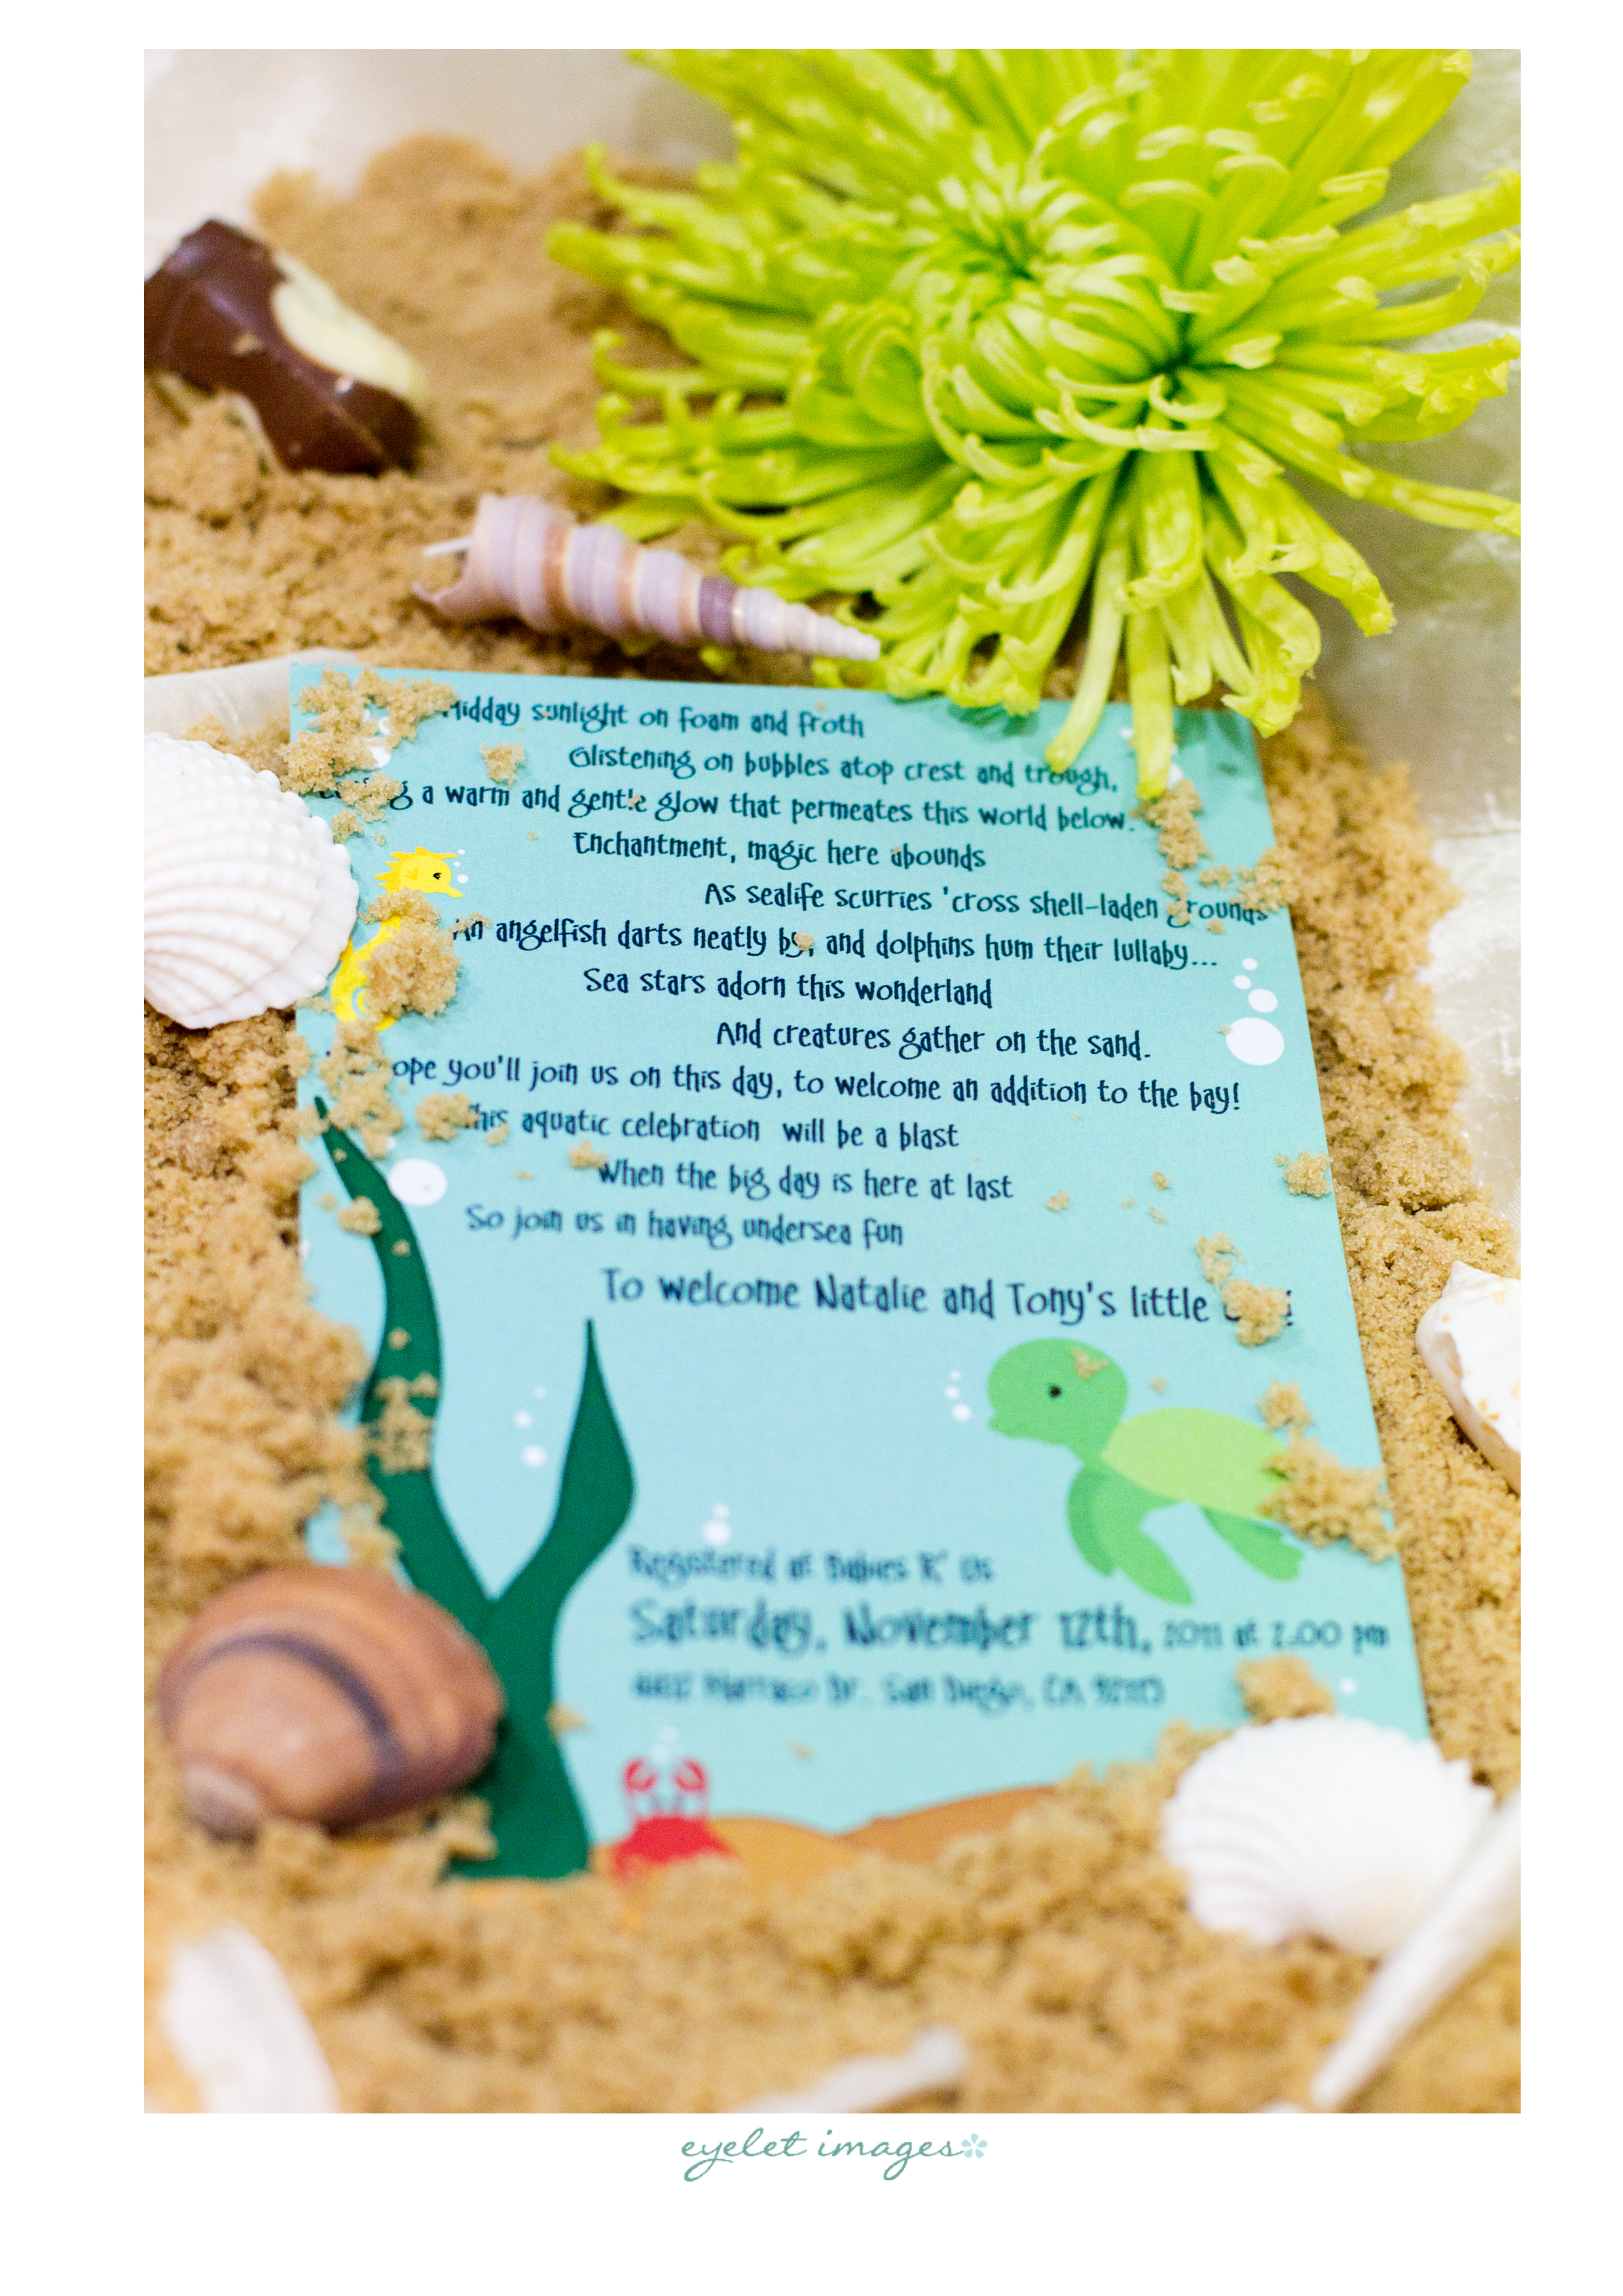 natalie s under the sea baby shower 11 12 2011 party details